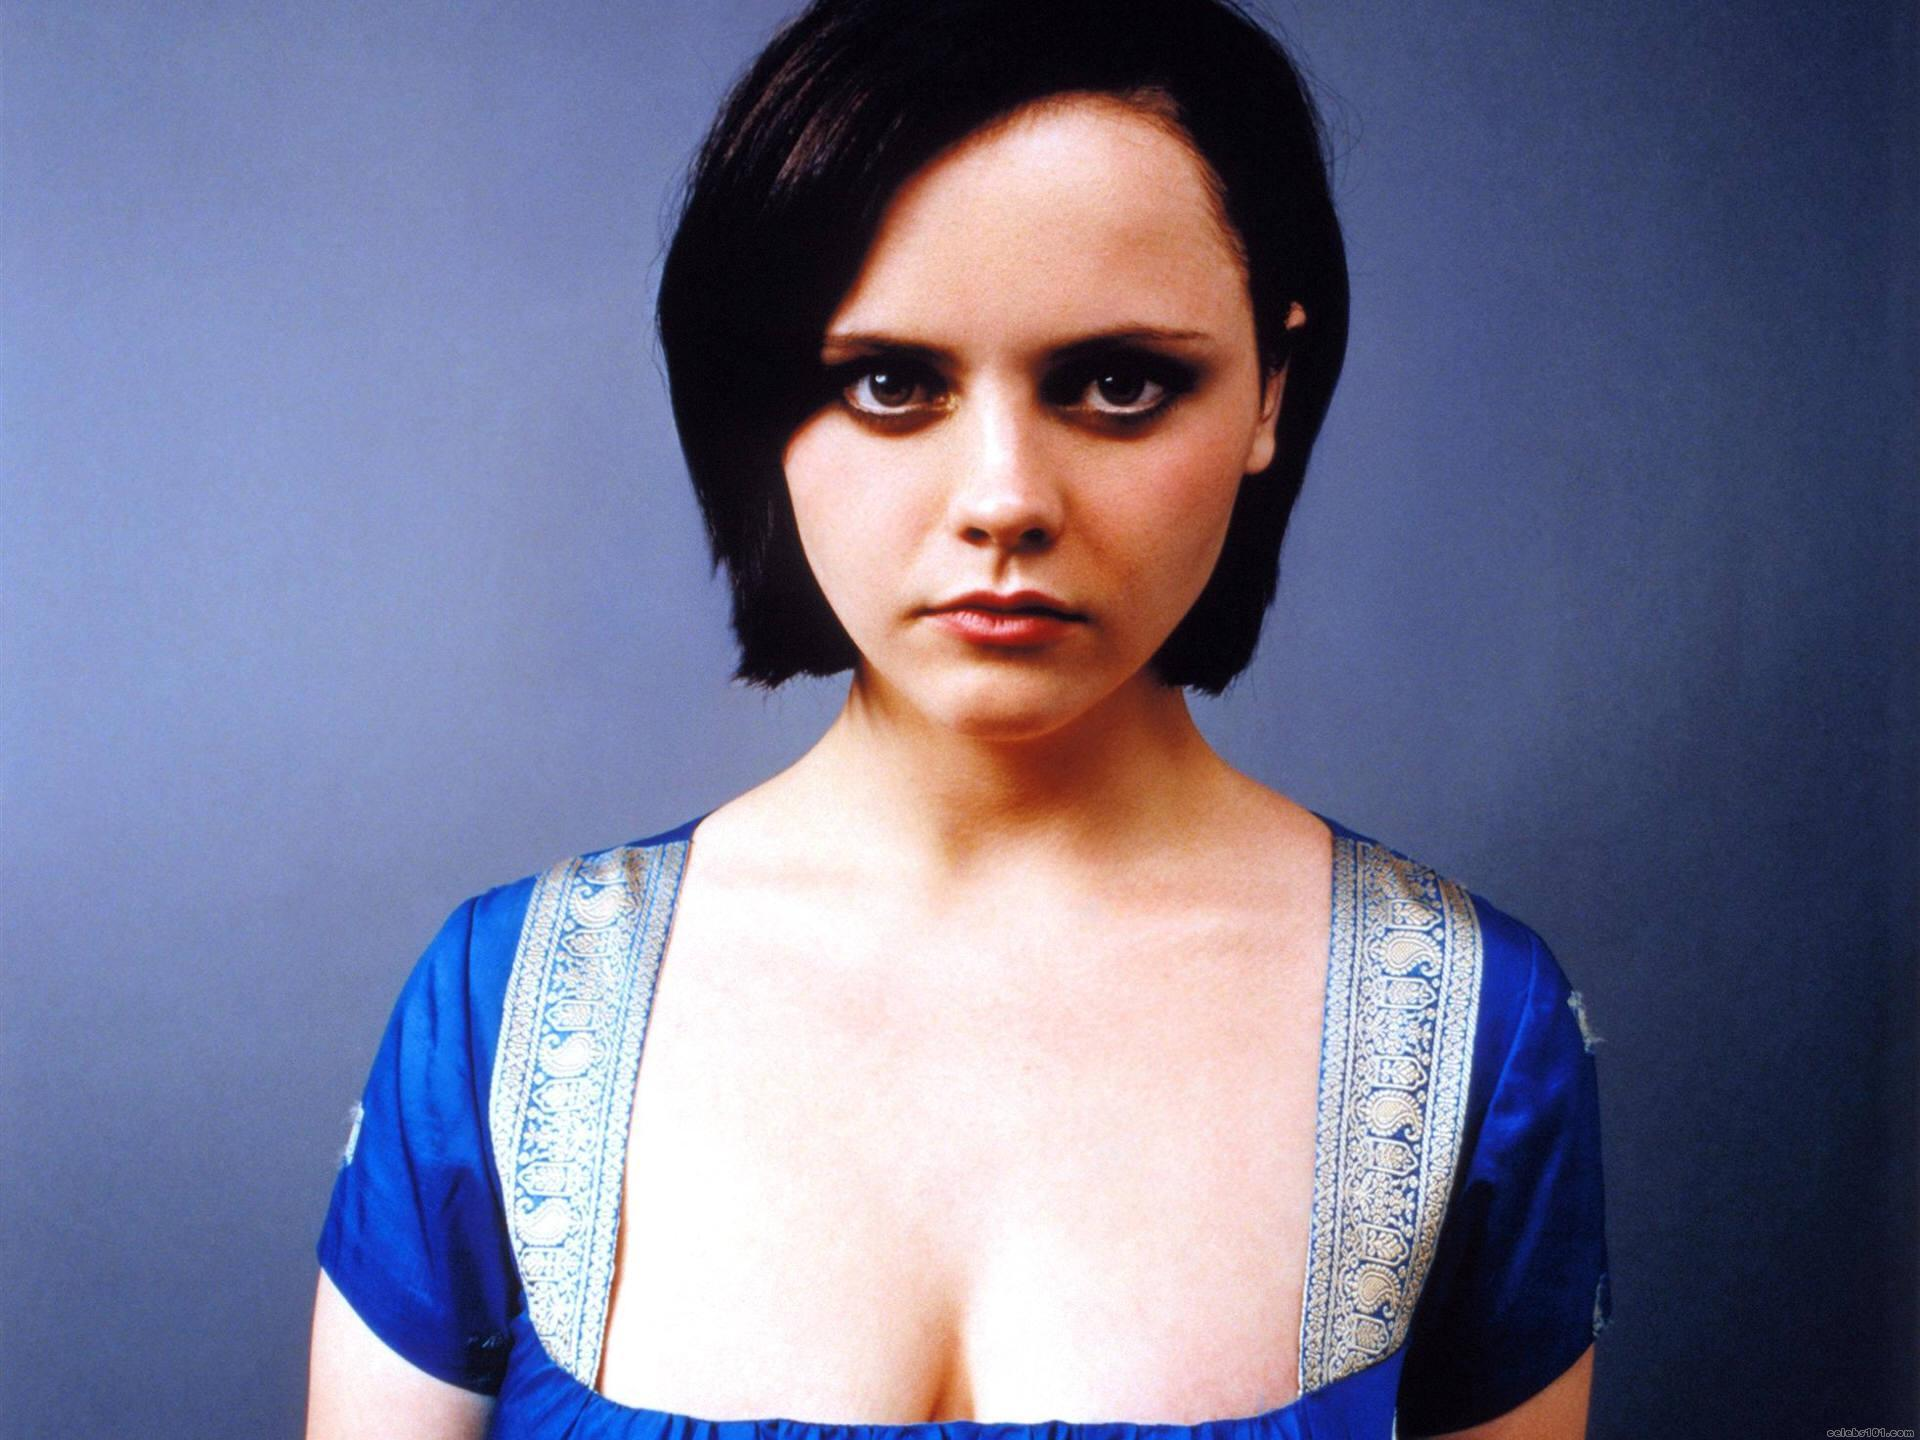 Christina Ricci - Images Gallery